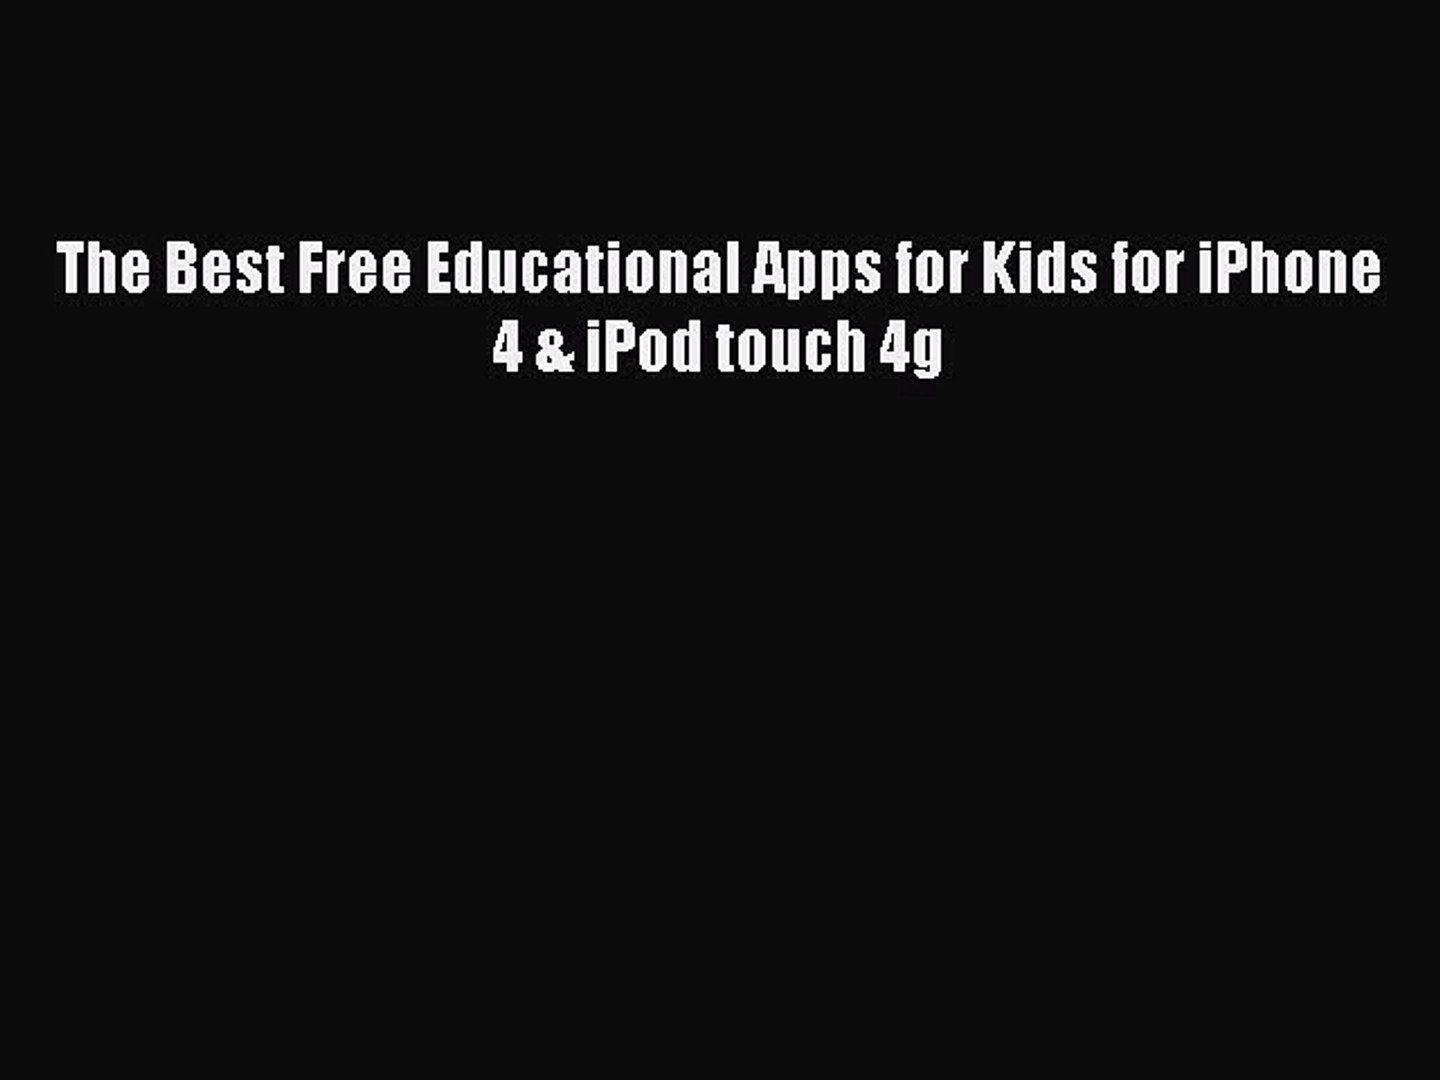 [Read PDF] The Best Free Educational Apps for Kids for iPhone 4 & iPod  touch 4g Download Free